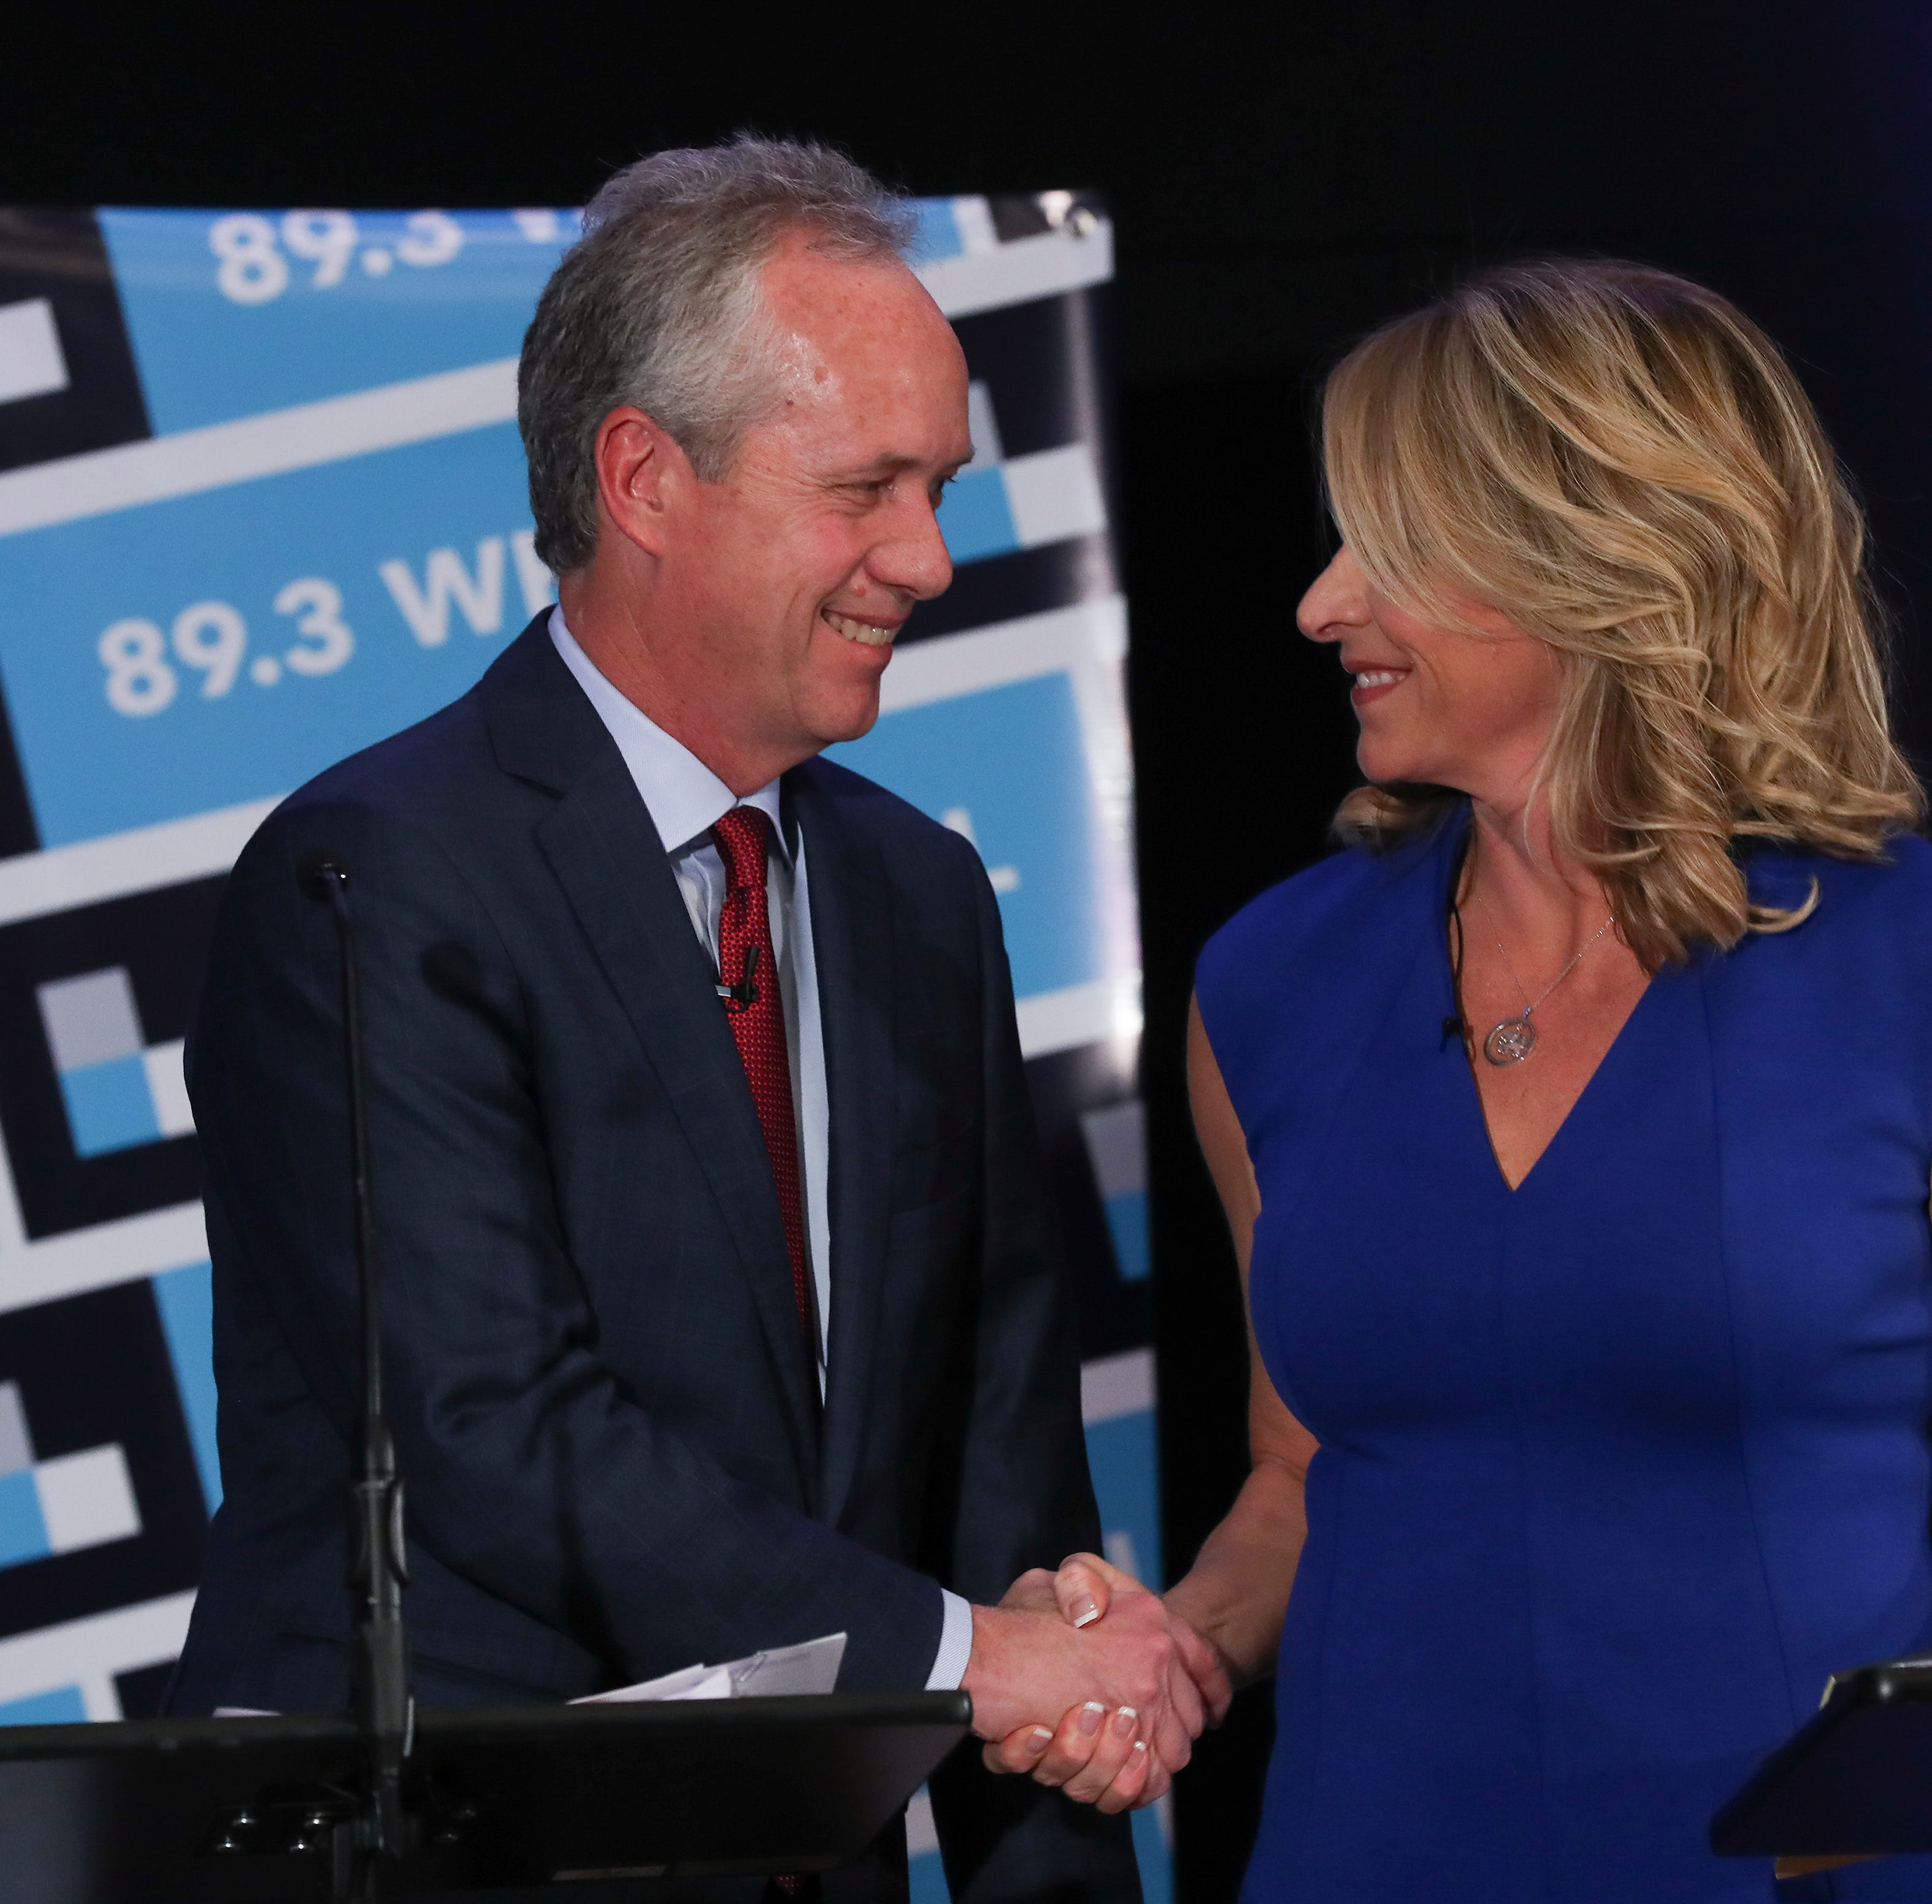 Fischer, Leet offer starkly different pictures of Louisville at debate